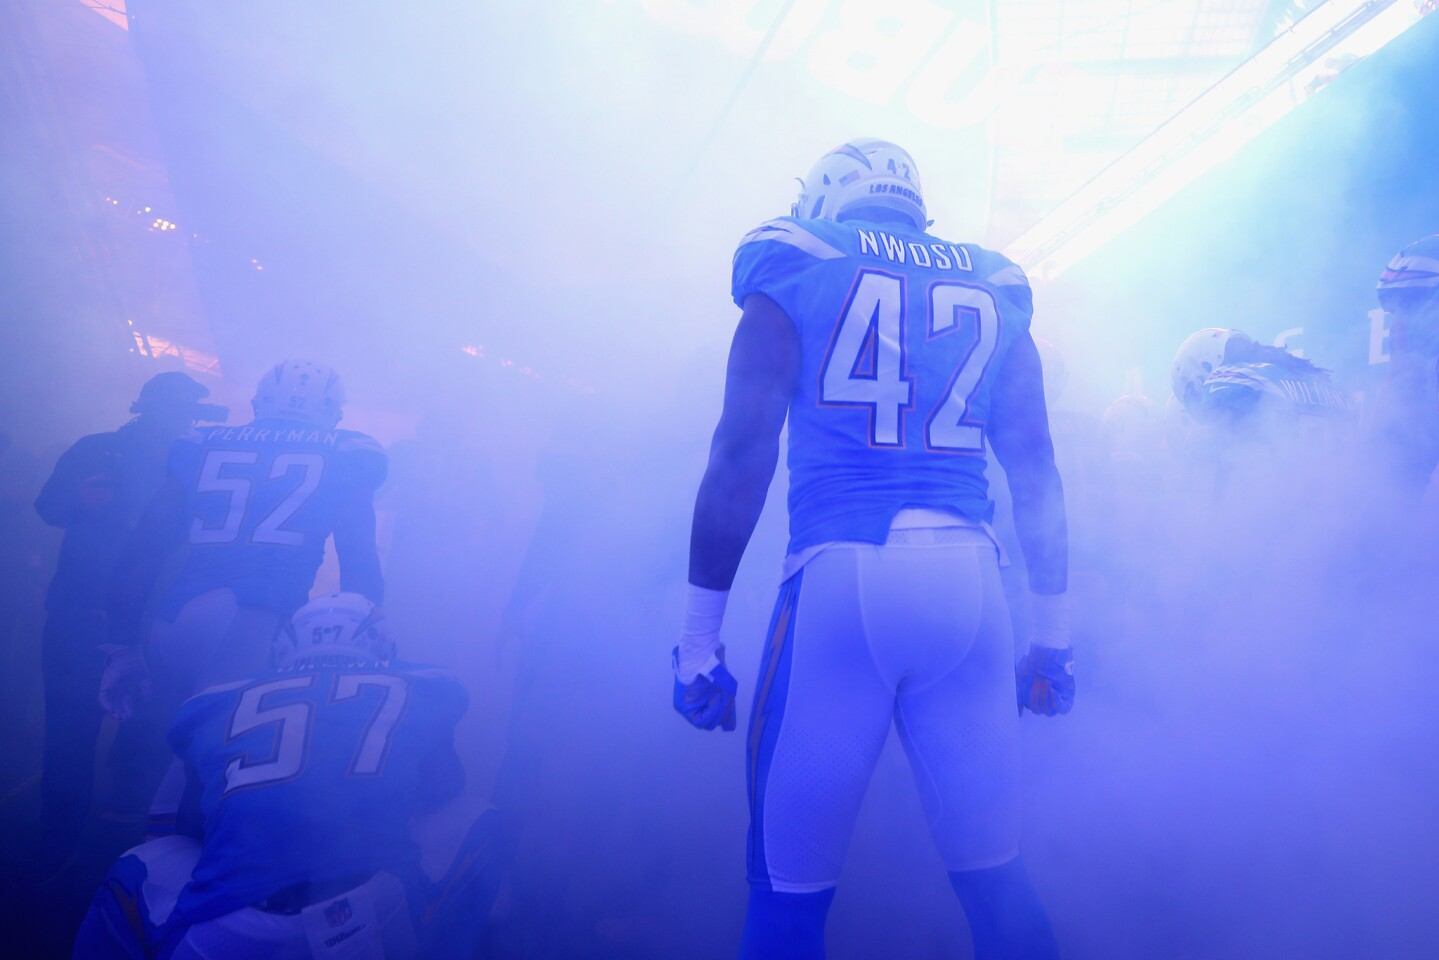 Uchenna Nwosu of Los Angeles Chargers is seen in the tunnel during the NFL International Series match between Tennessee Titans and Los Angeles Chargers at Wembley Stadium on October 21, 2018 in London, England.